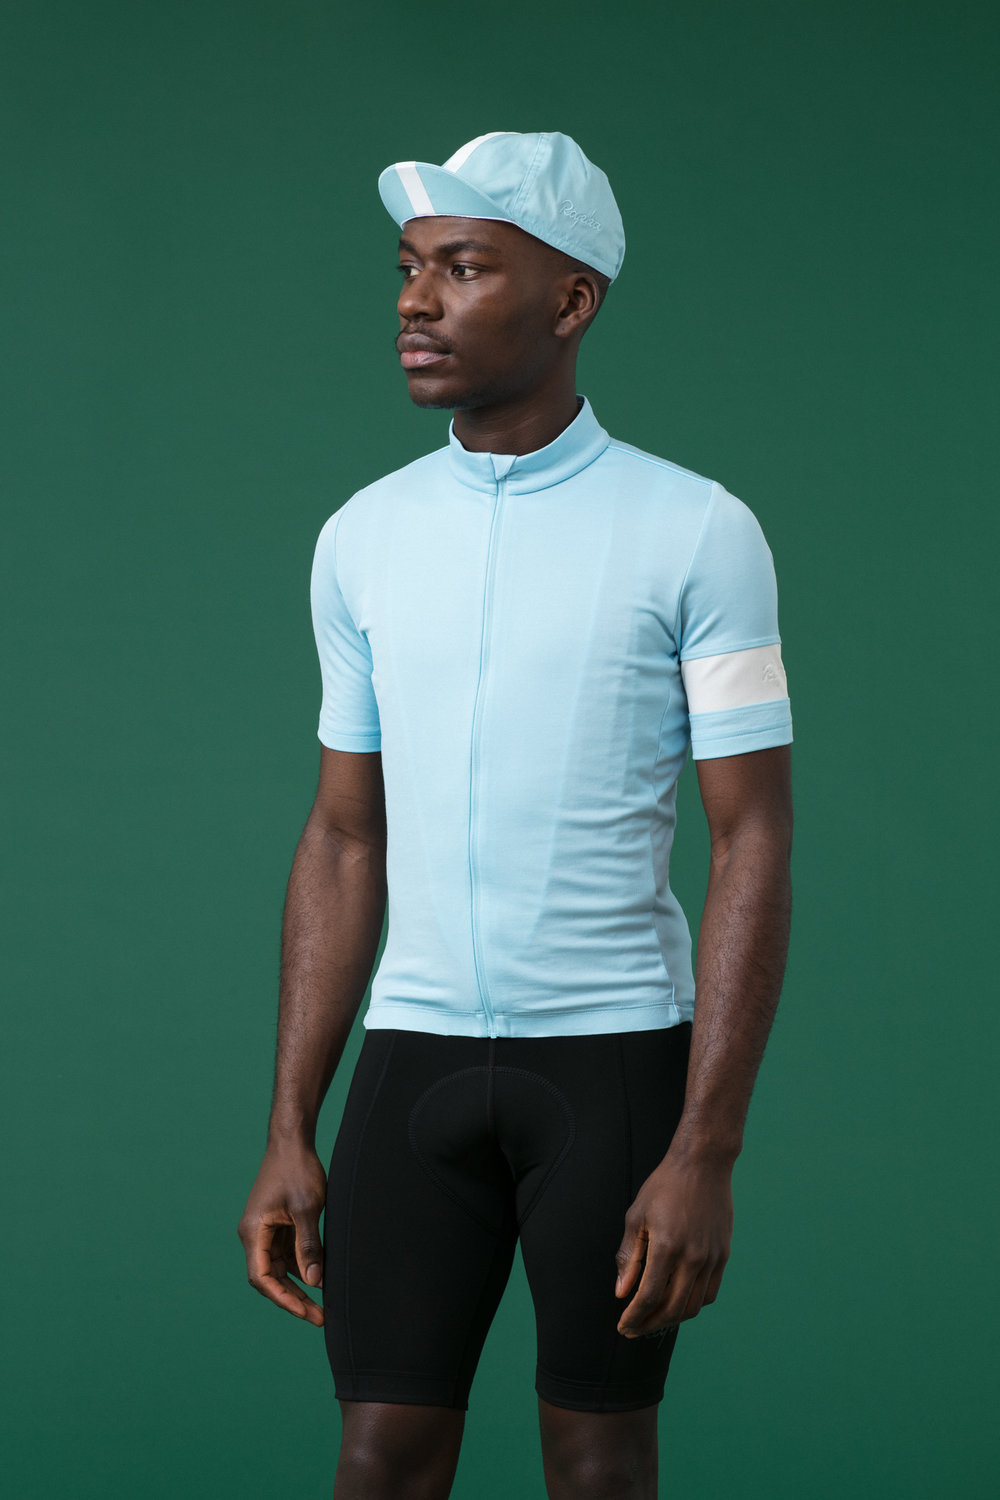 Rapha-Colour-Shoot-6818.jpg